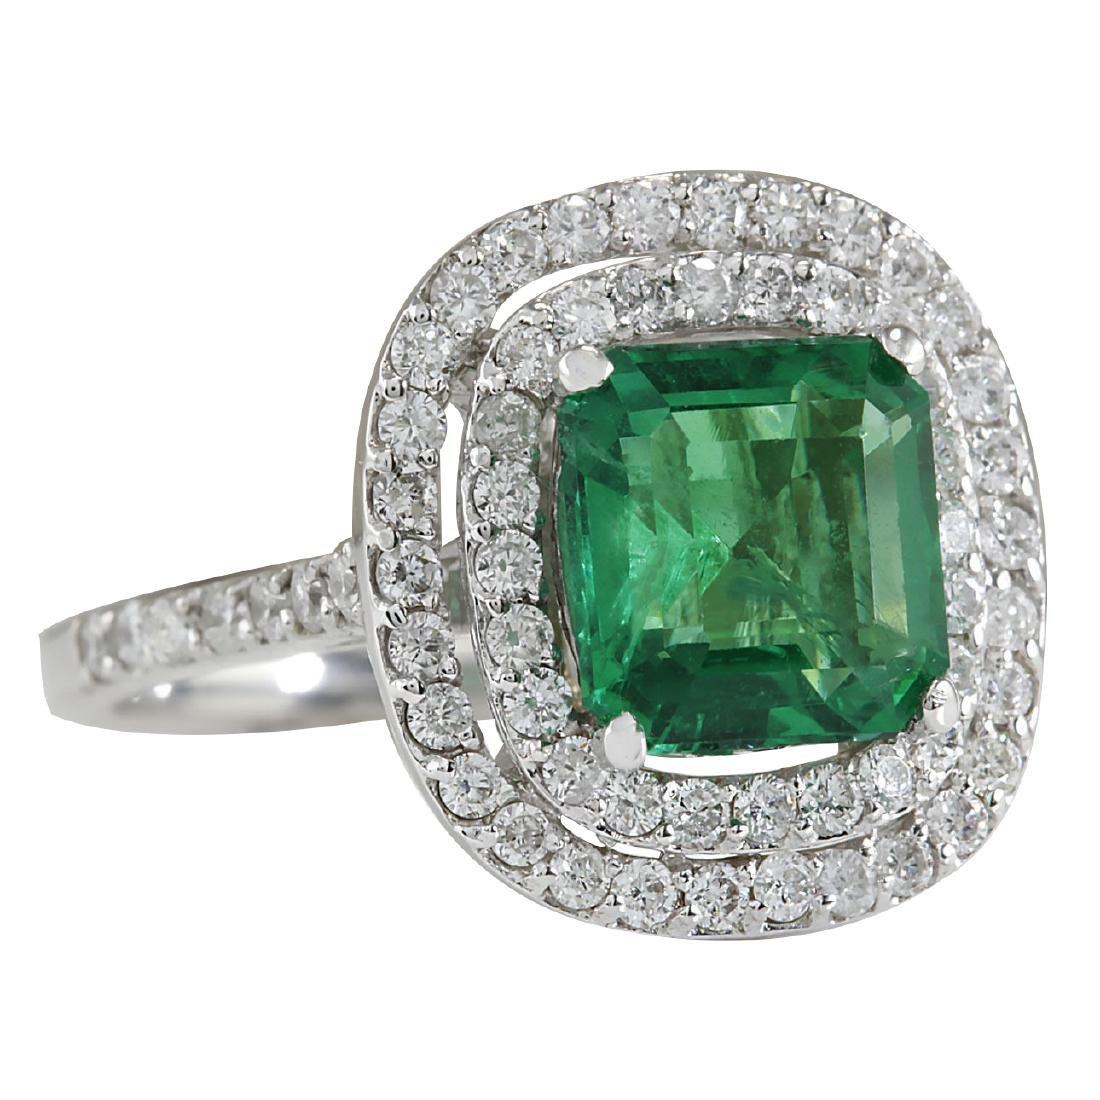 3.62CTW Natural Emerald And Diamond Ring In 18K White - 2